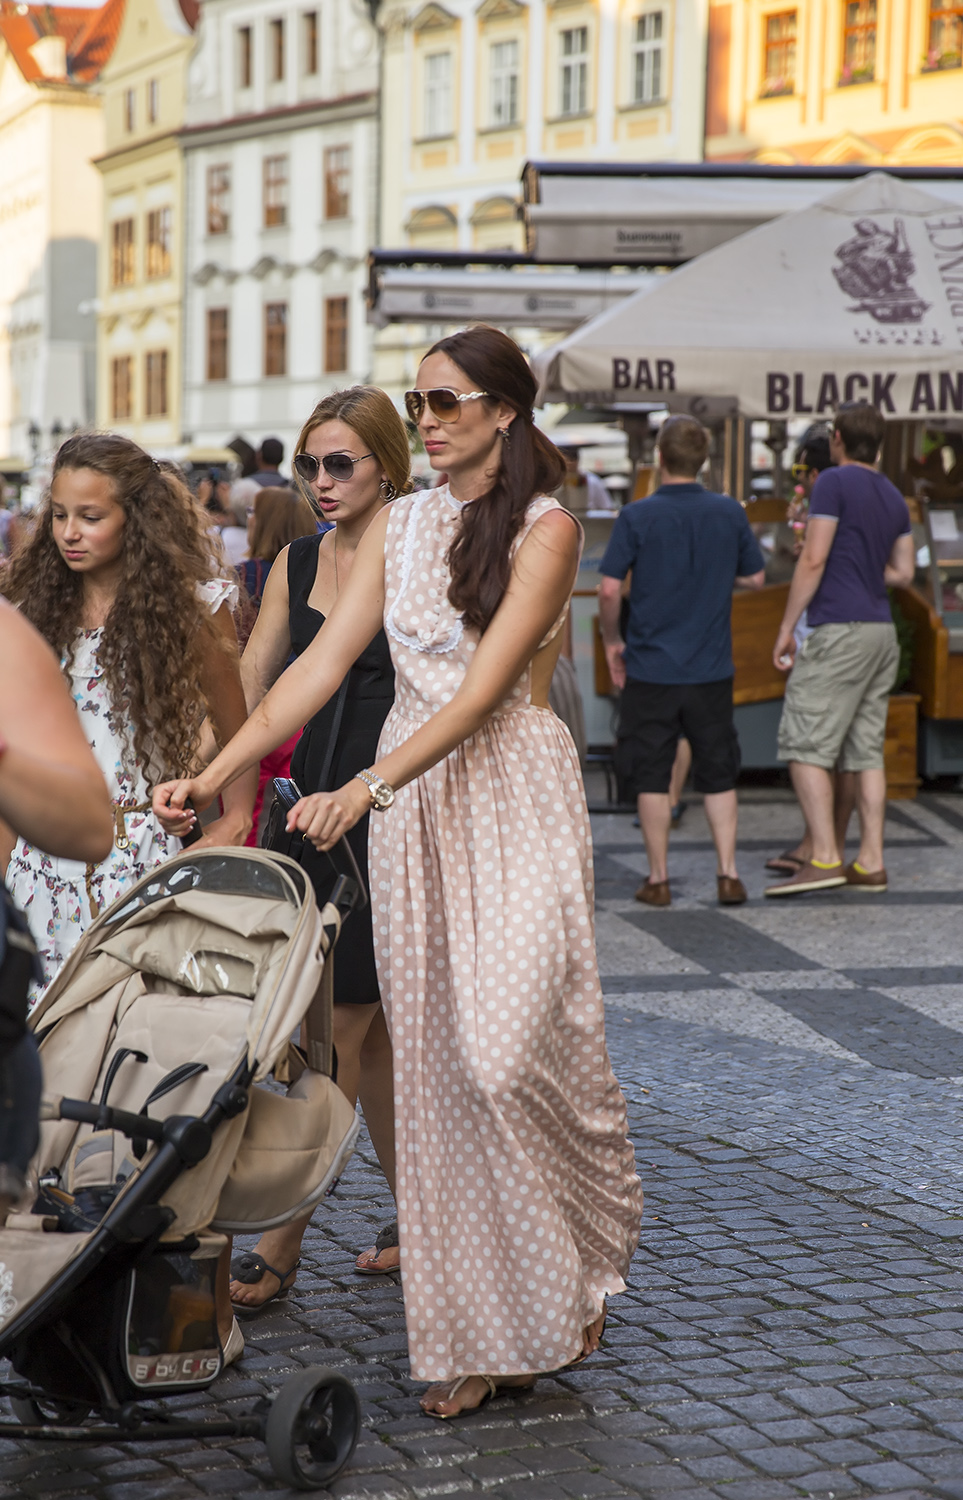 Street Fashion In Prague Lightaholic